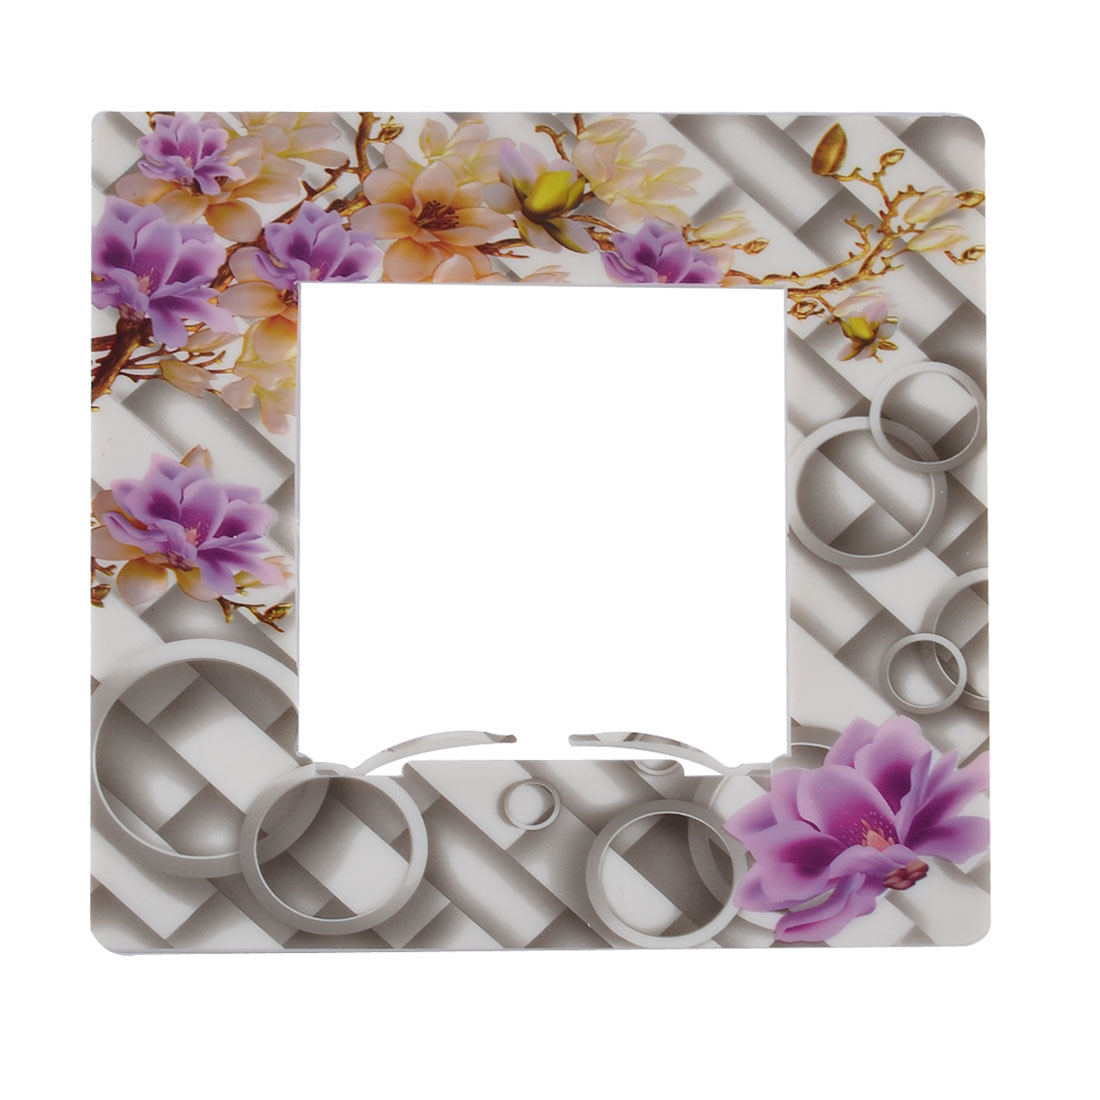 Plastic Flower Pattern Square Shape Light Switch Socket Cover Plate Protector